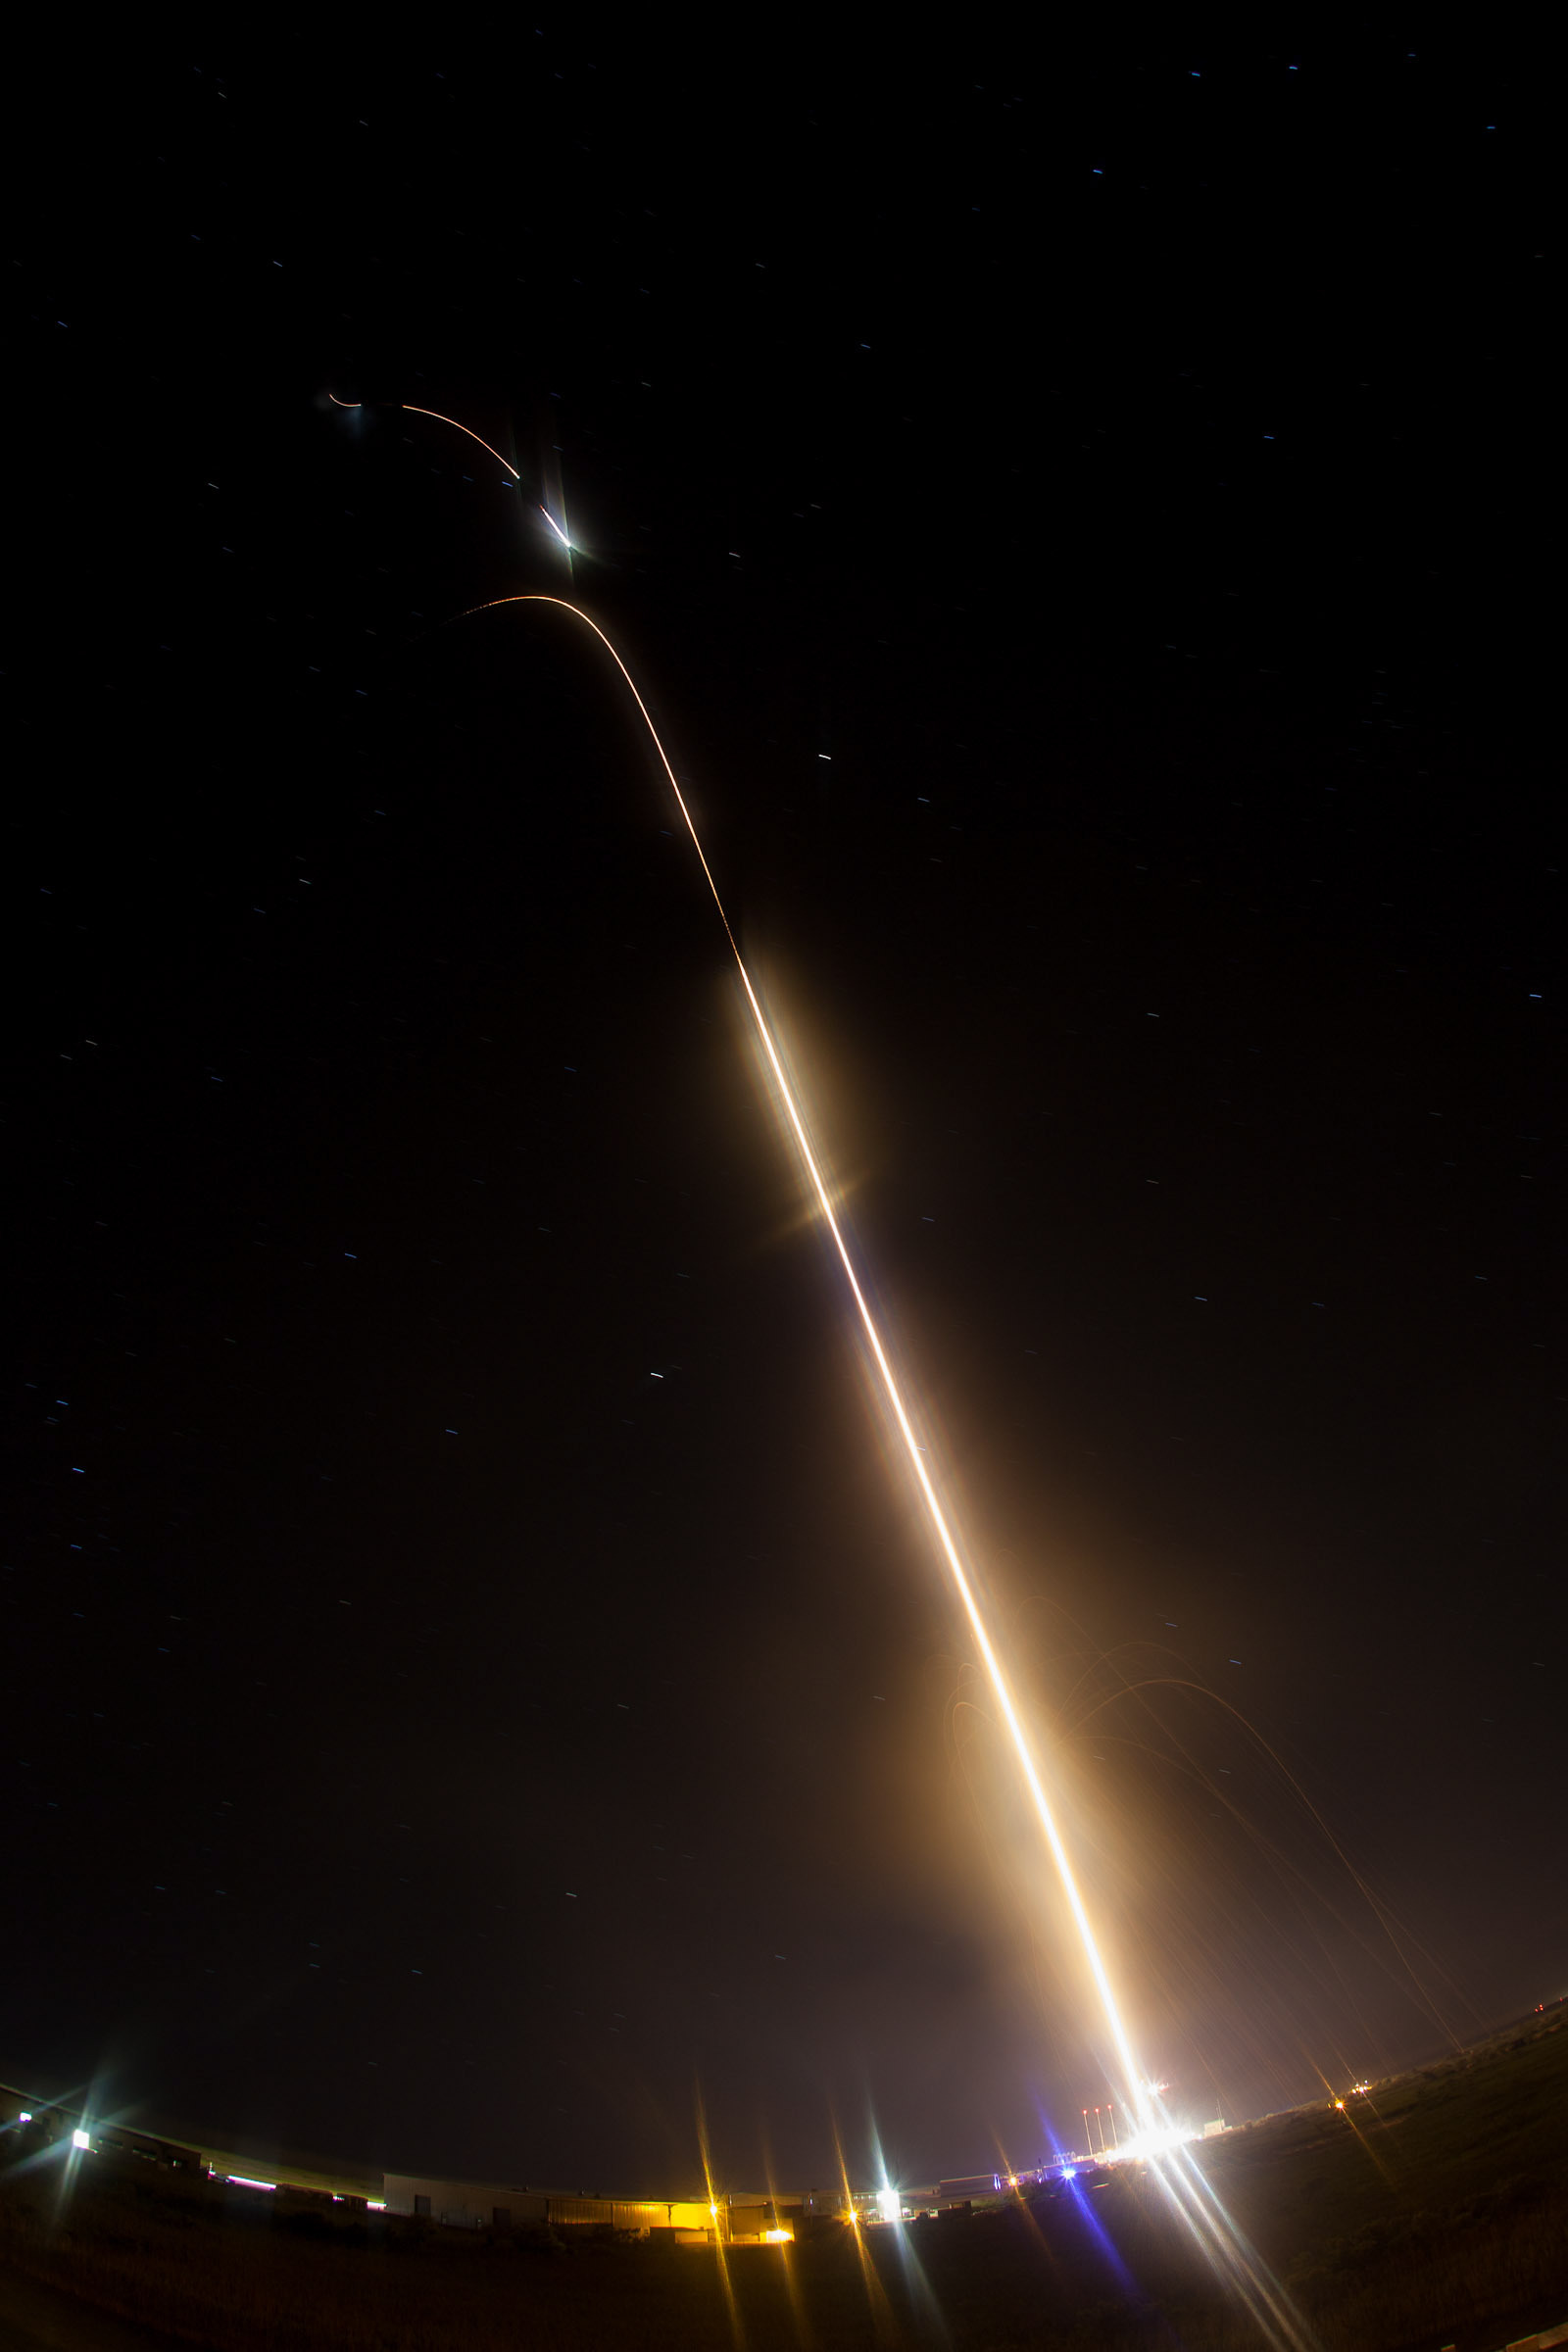 Dazzling NASA CIBER Rocket Launch